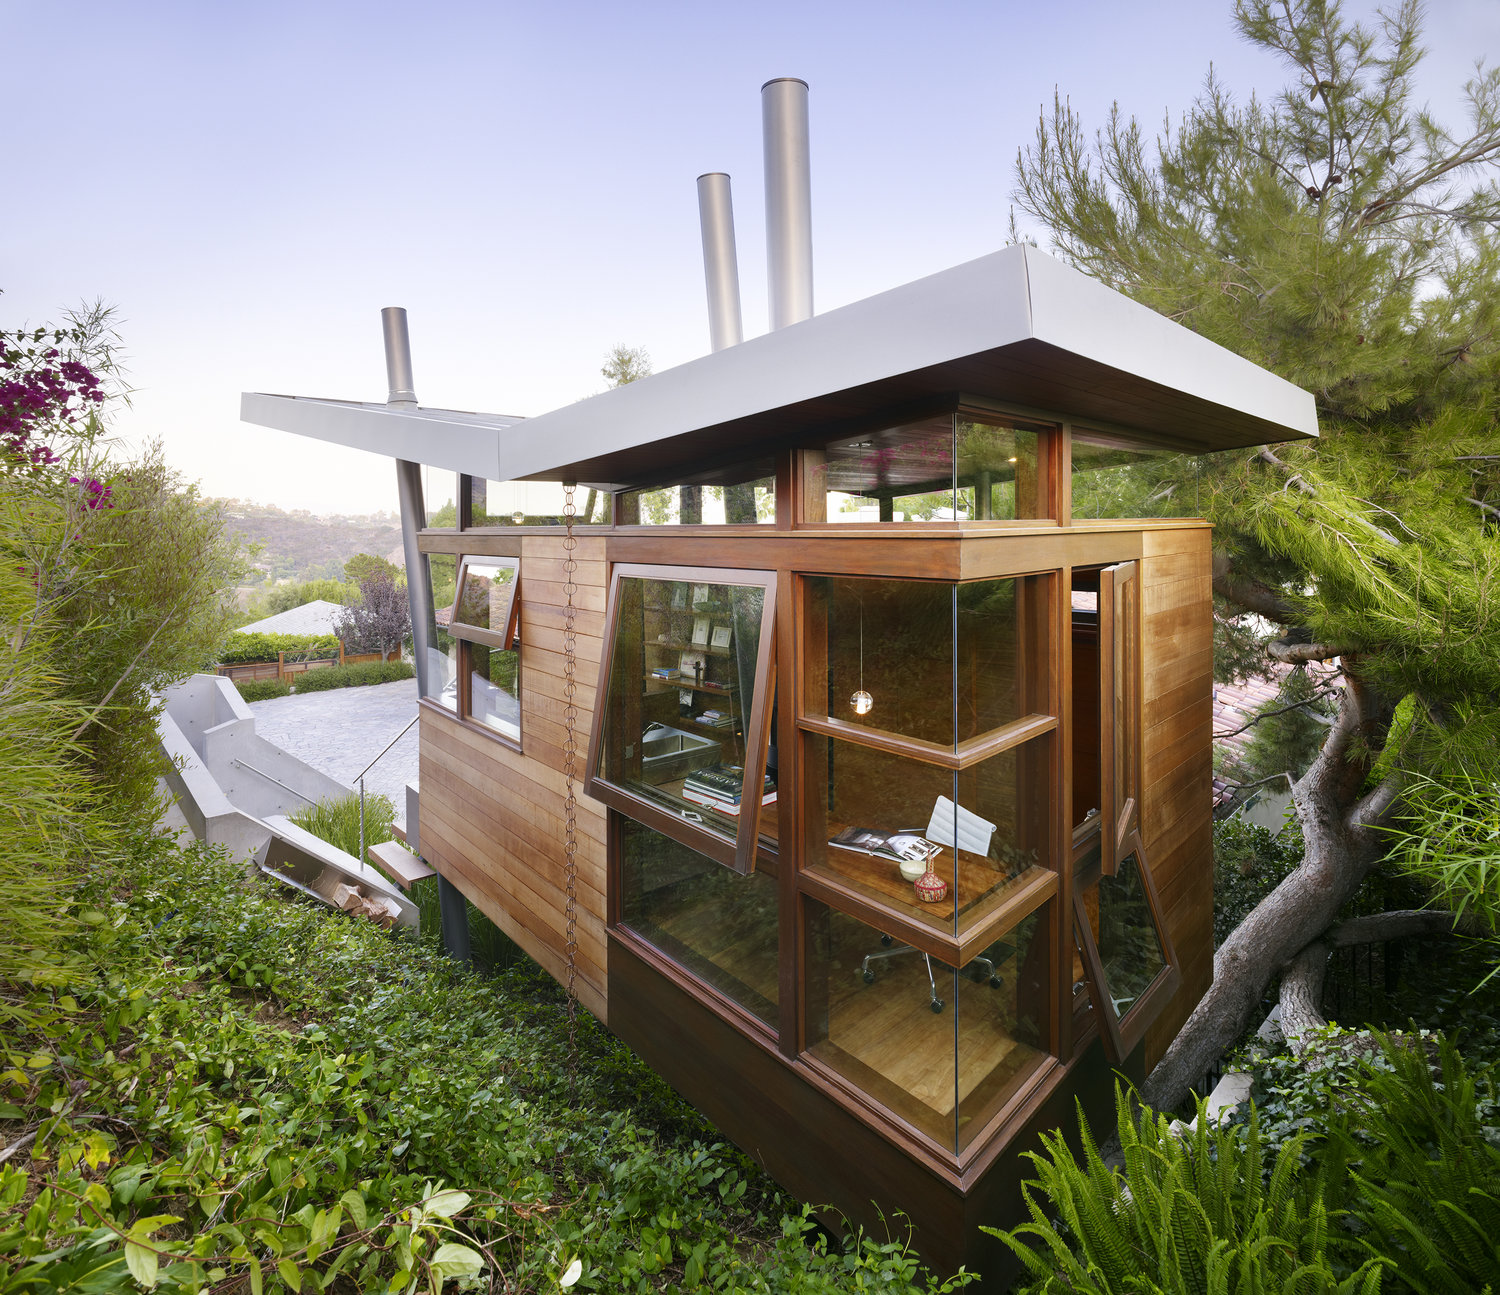 The Banyan Drive Treehouse - LA, Calivornia - architecture